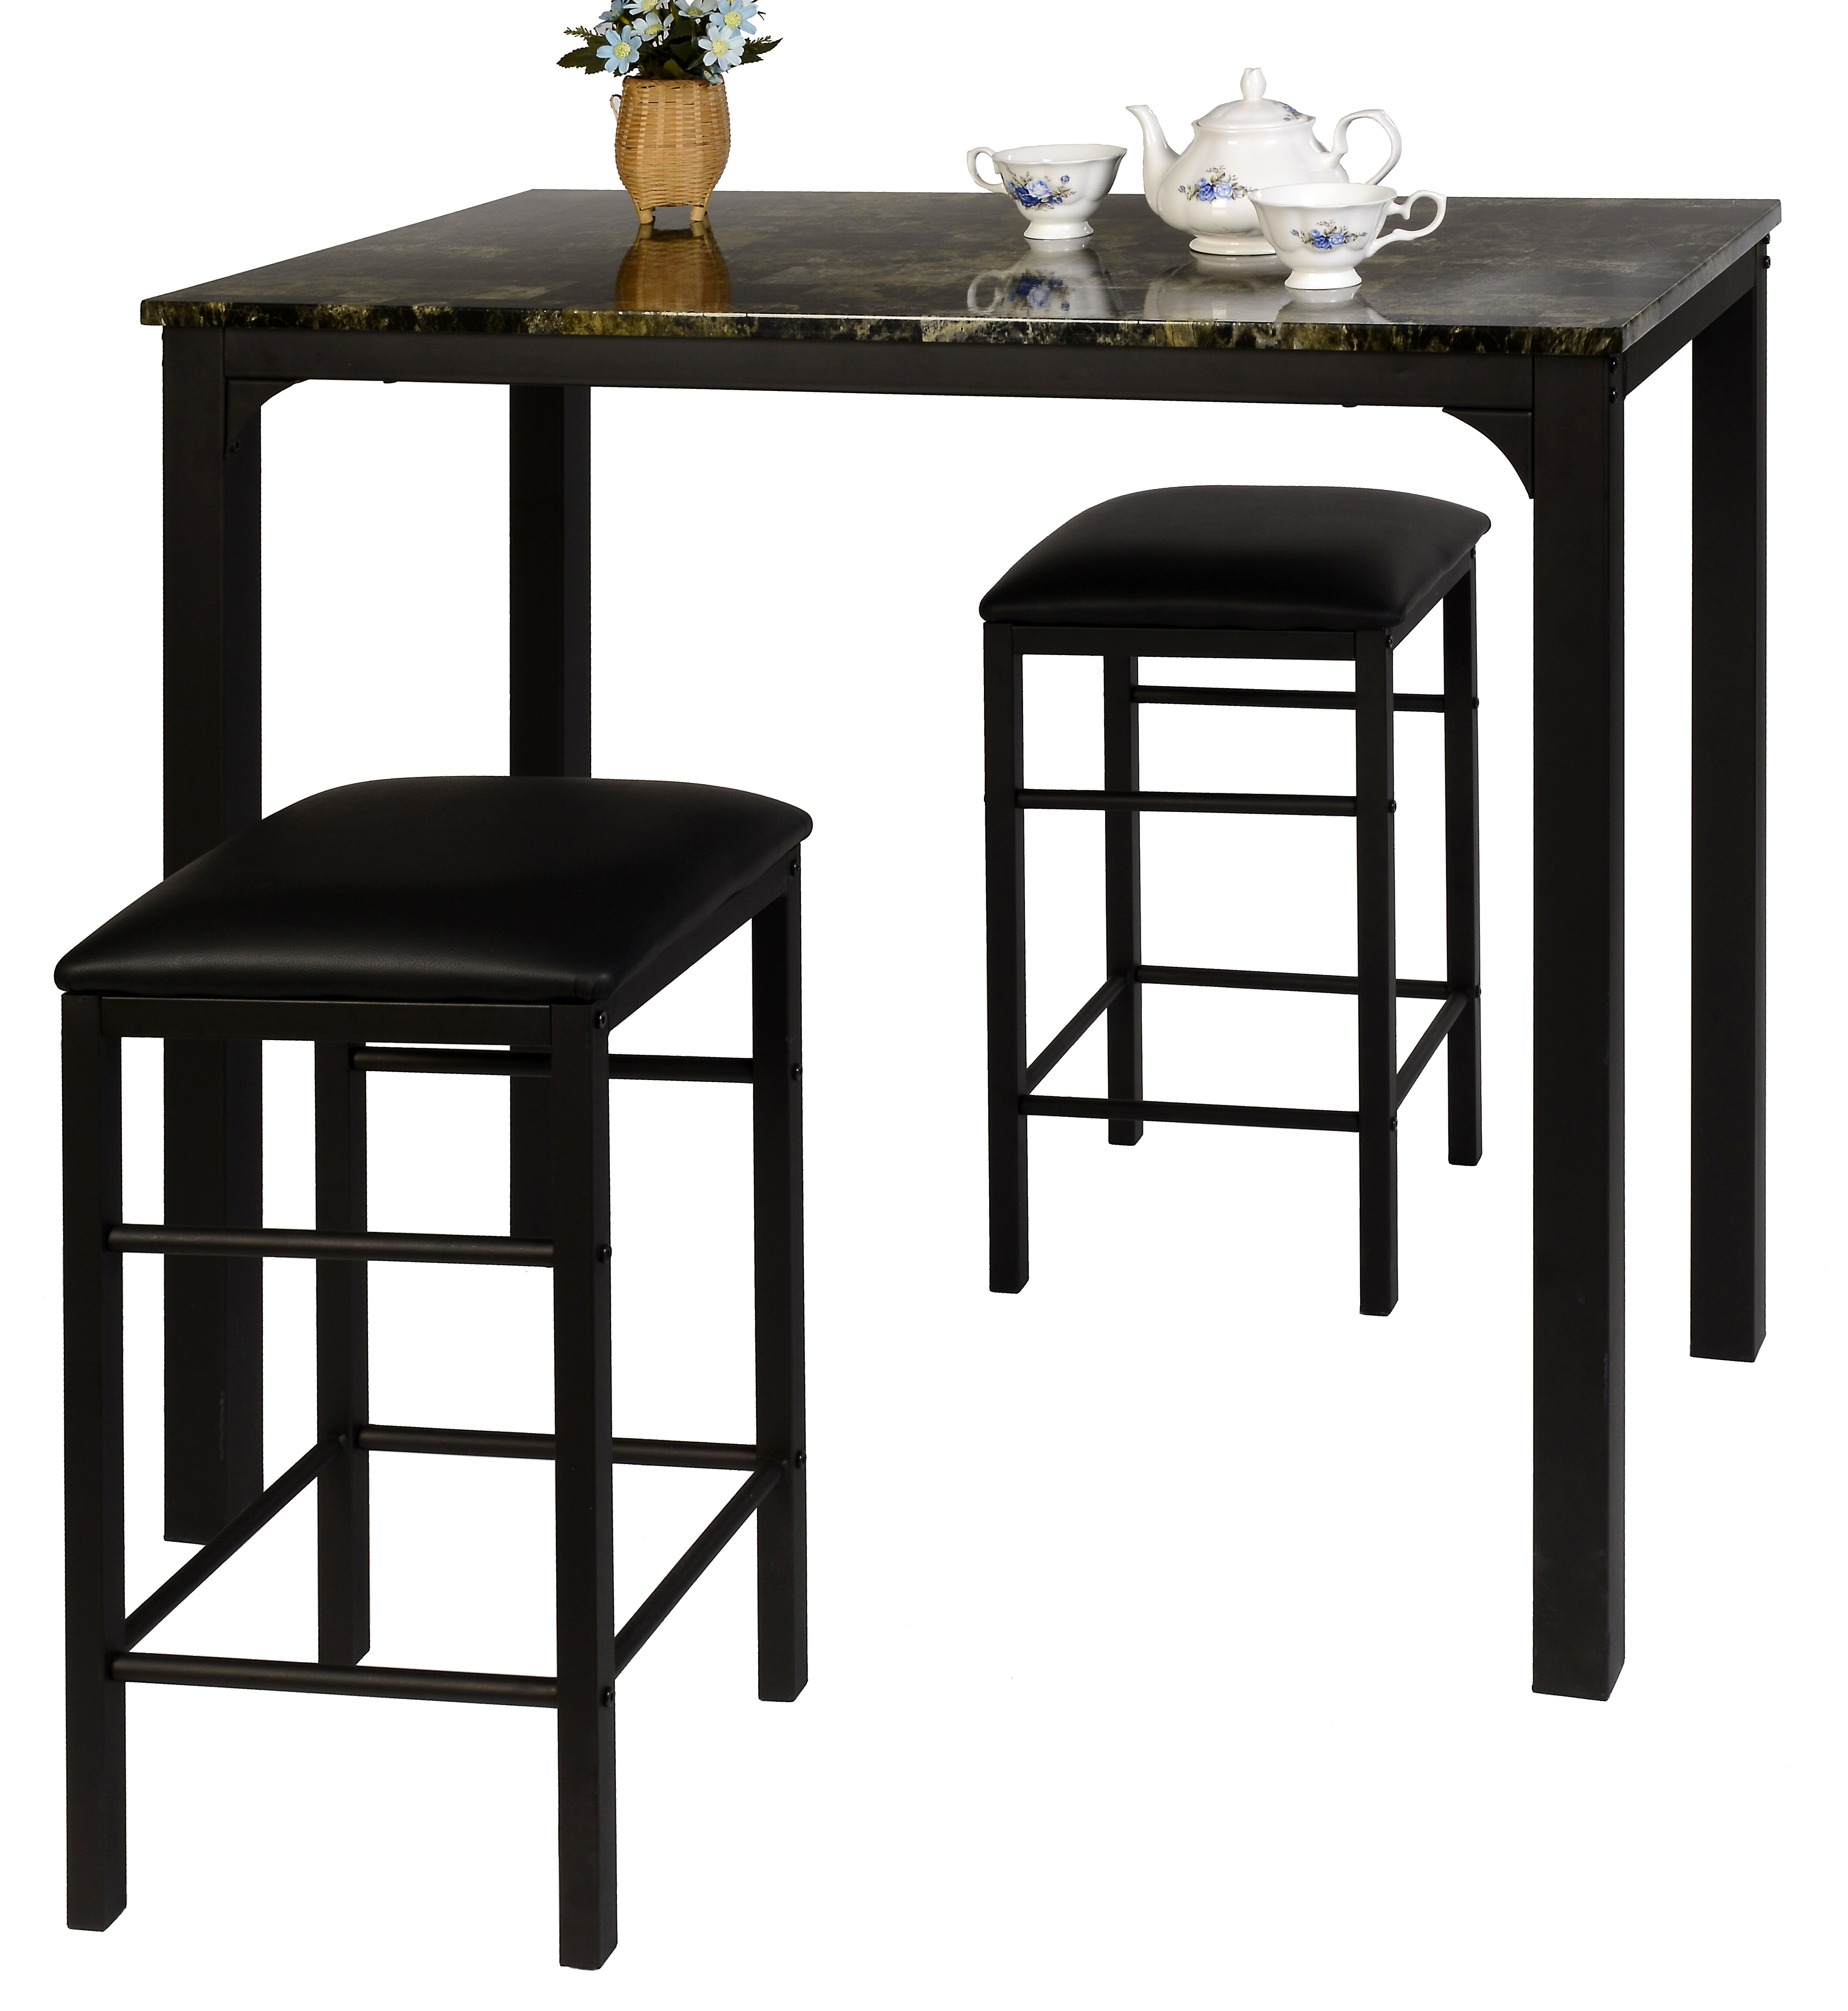 Wayfair Within Mitzel 3 Piece Dining Sets (View 6 of 25)